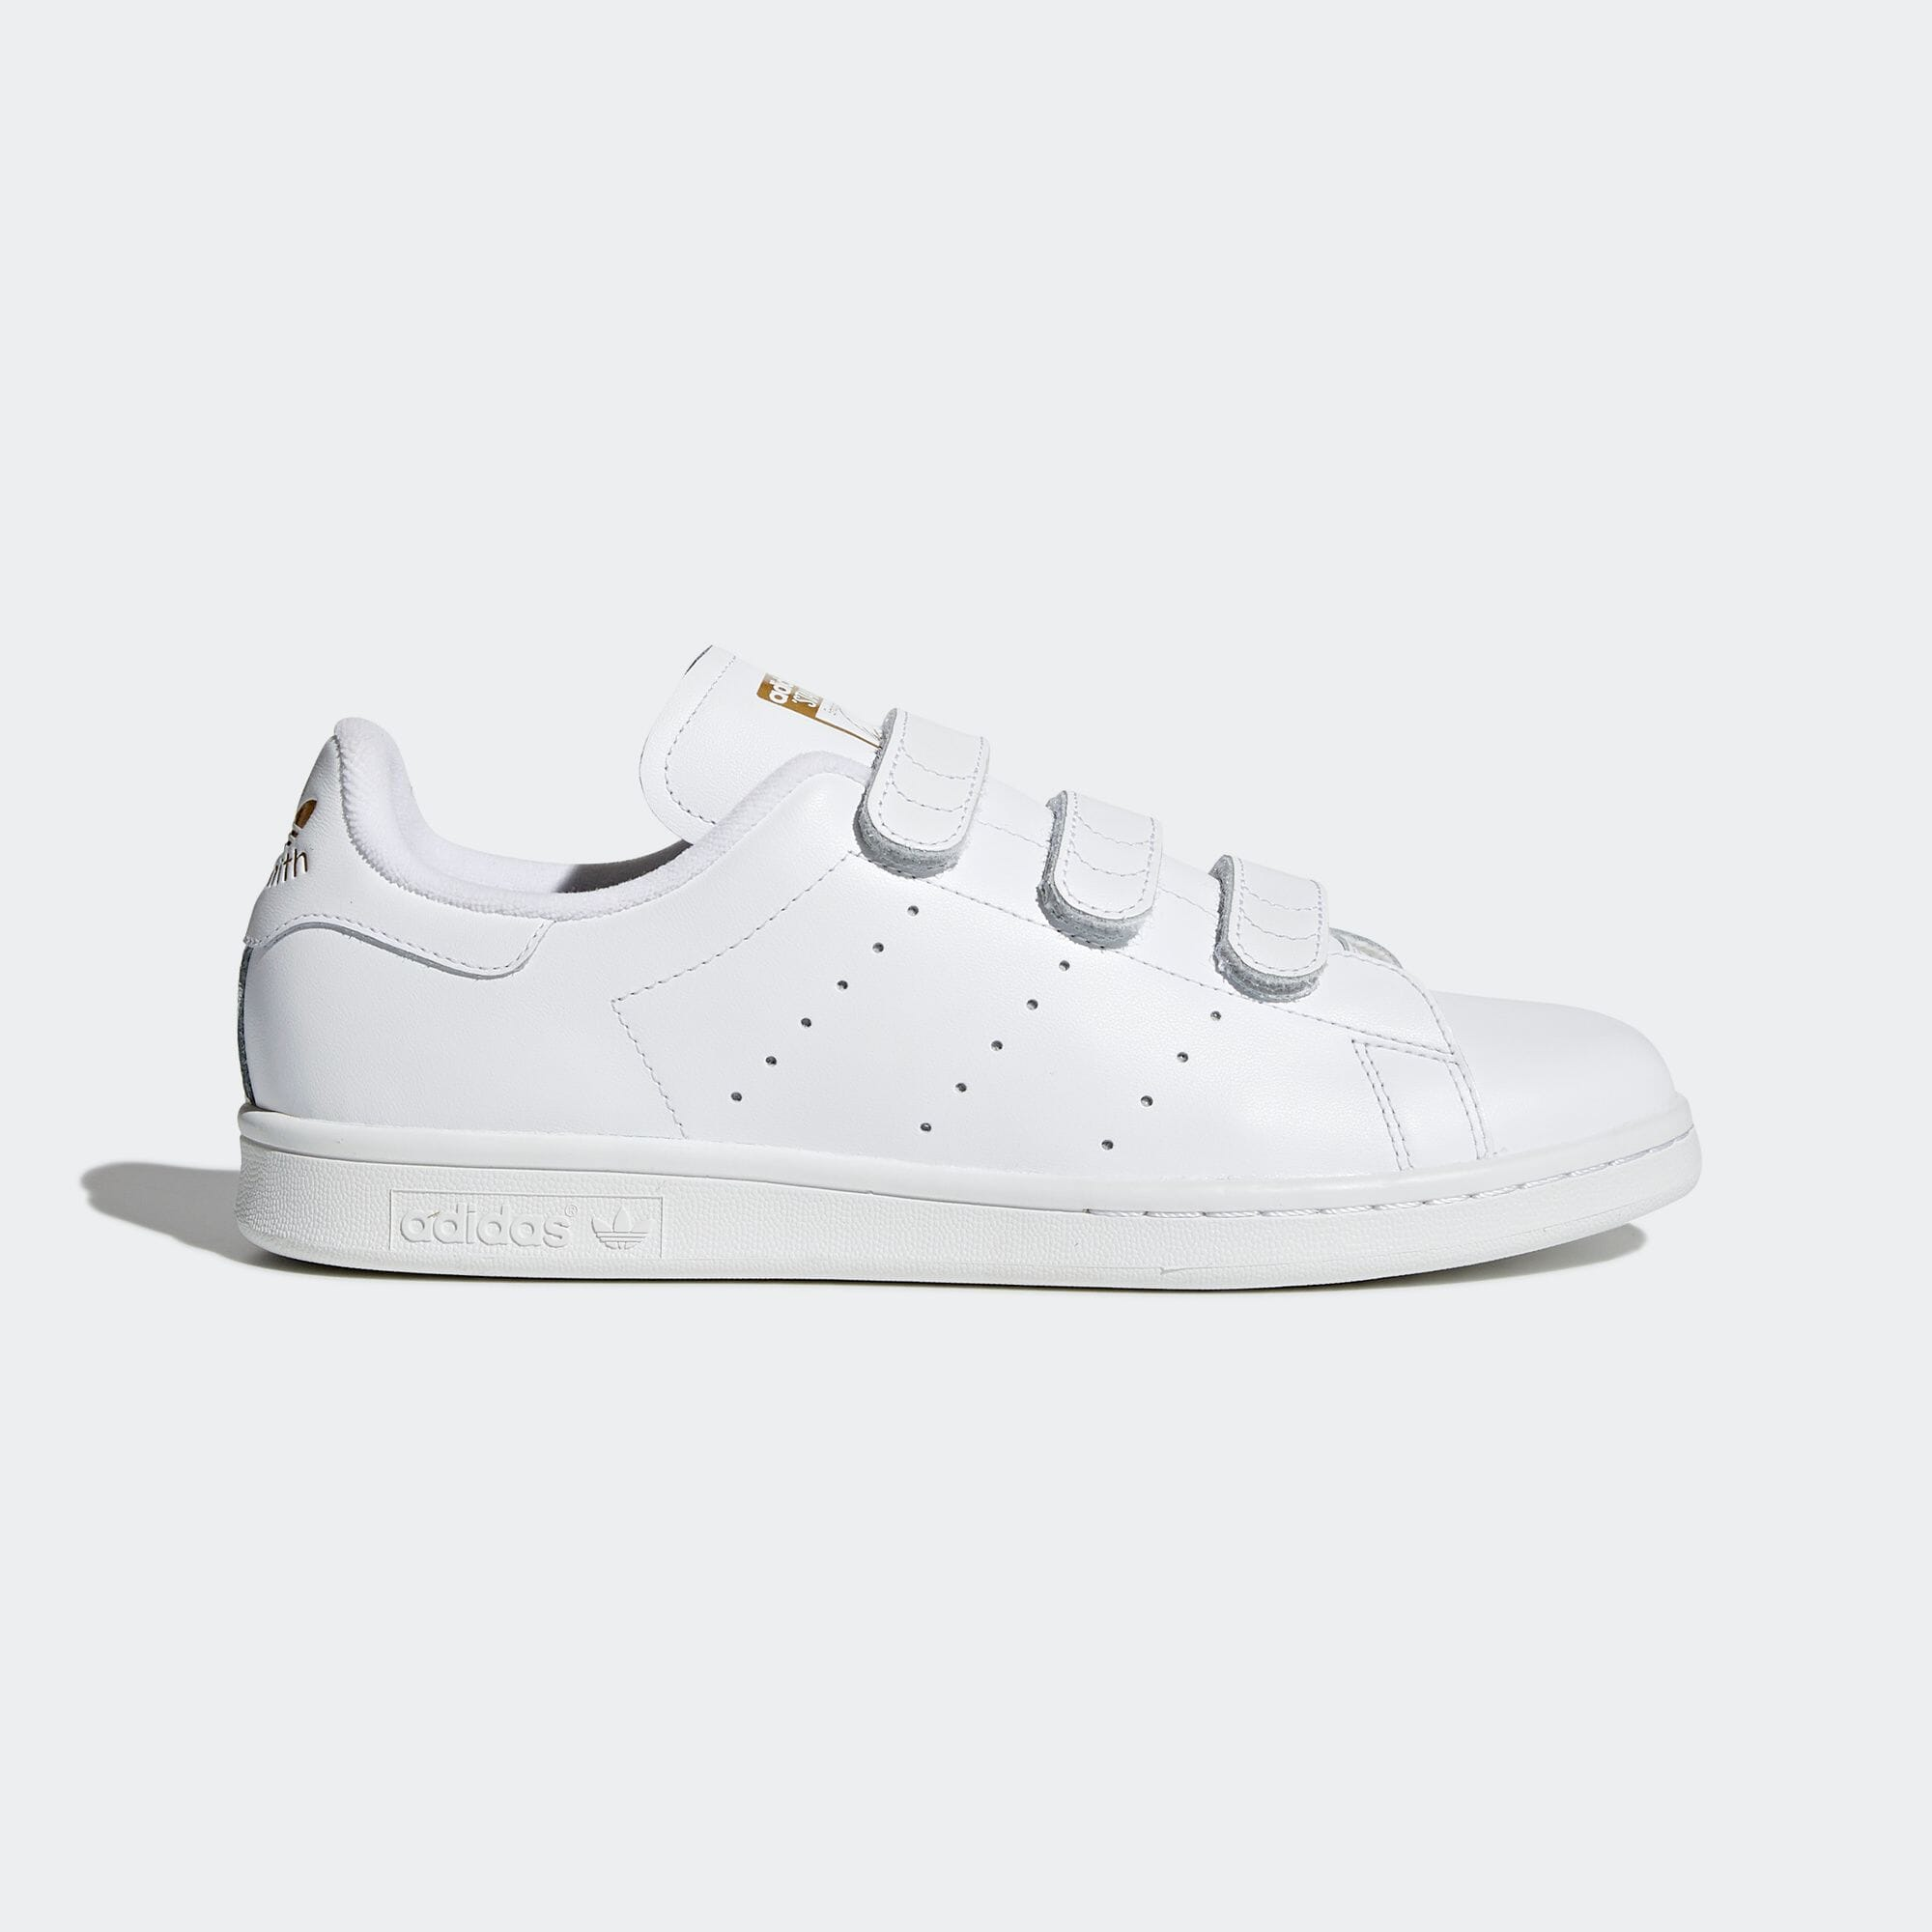 https://shop.adidas.jp/products/S75188/